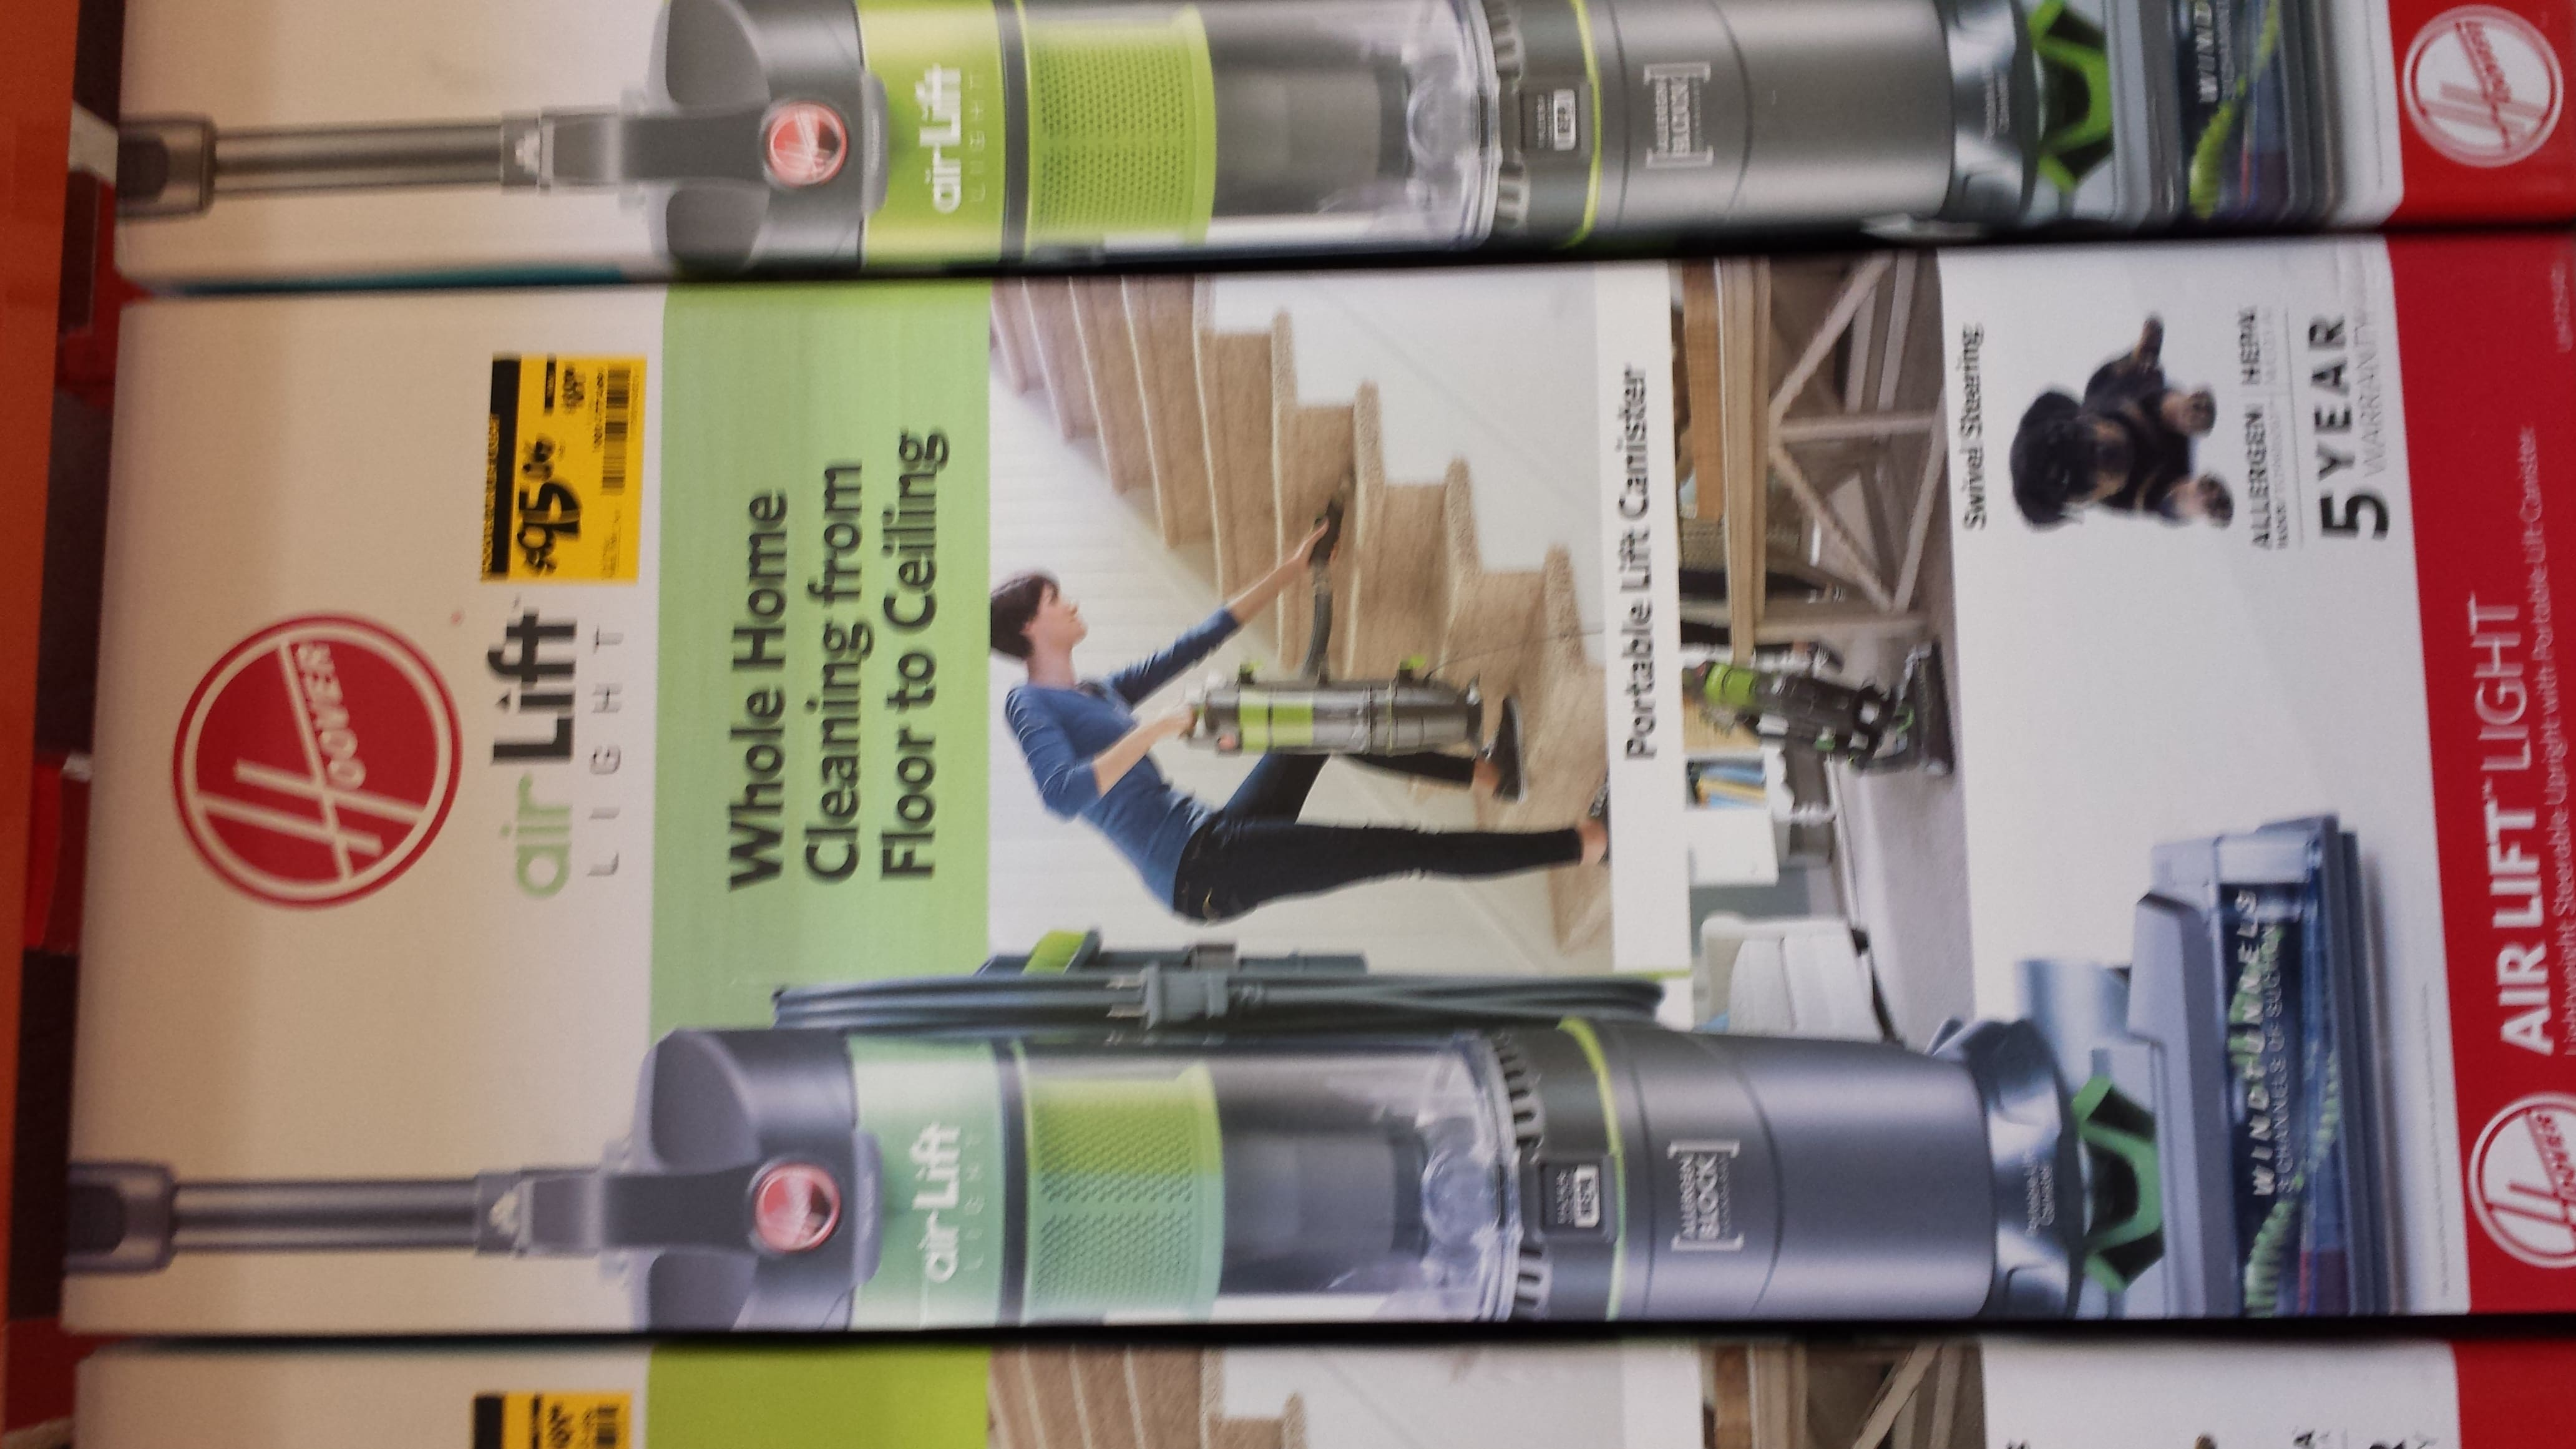 B&M, Home Depot: Hoover Air Lift Light Bagless Upright Vacuum and Canister Vacuum Cleaner Combo Model # UH72540 : $95.06, reg. $189.00 YMMV